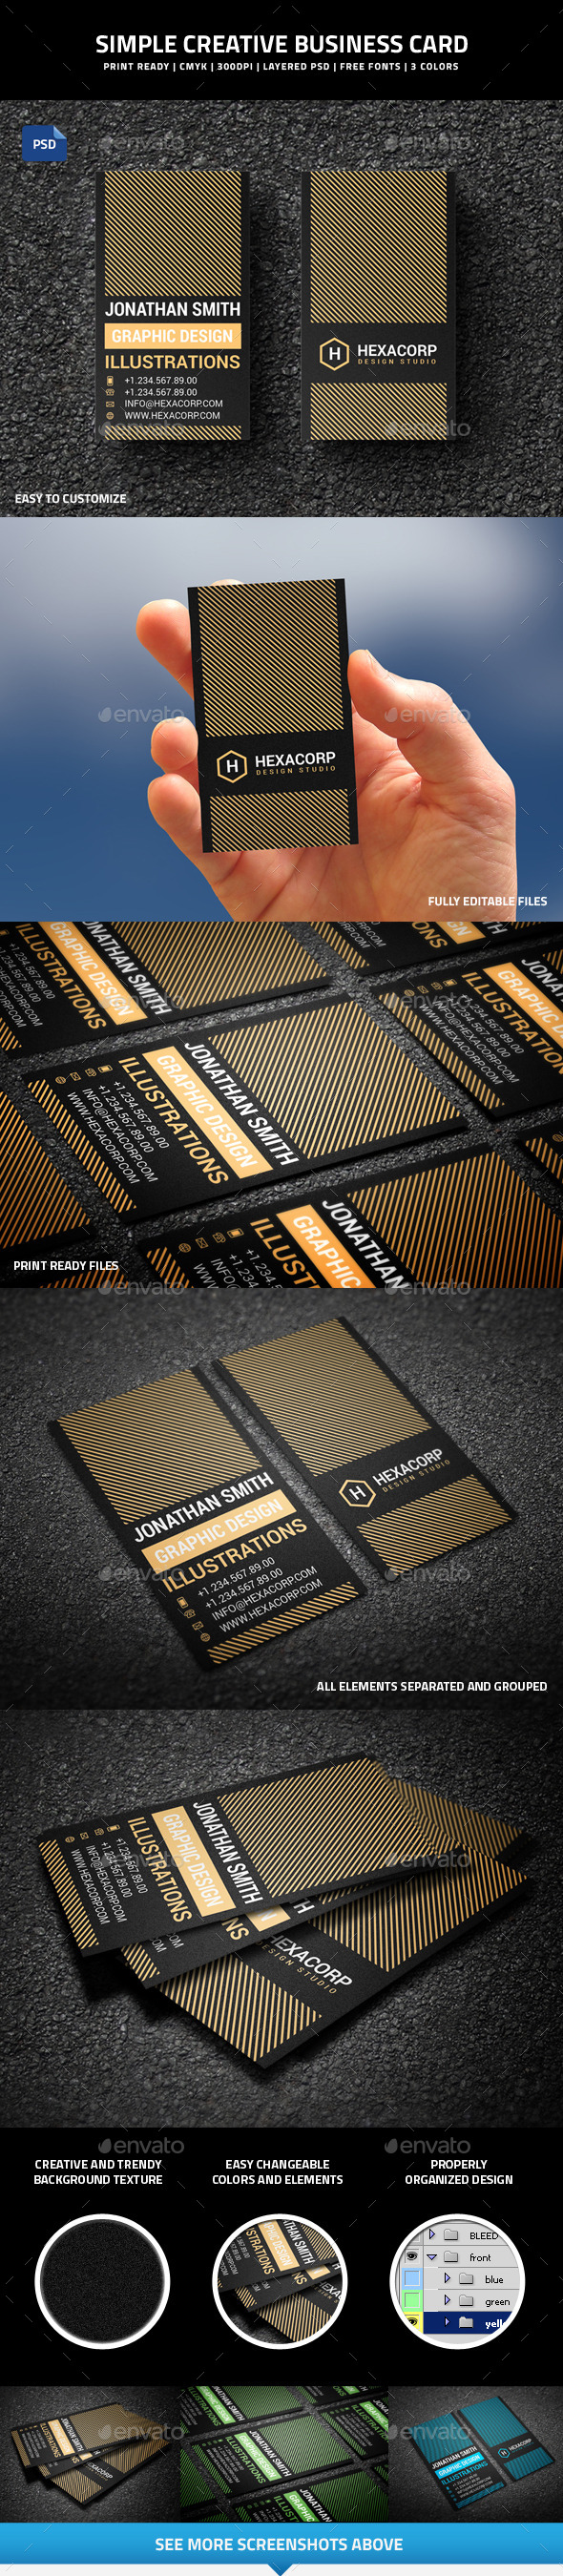 Simple Creative Business Card - 51 - Creative Business Cards